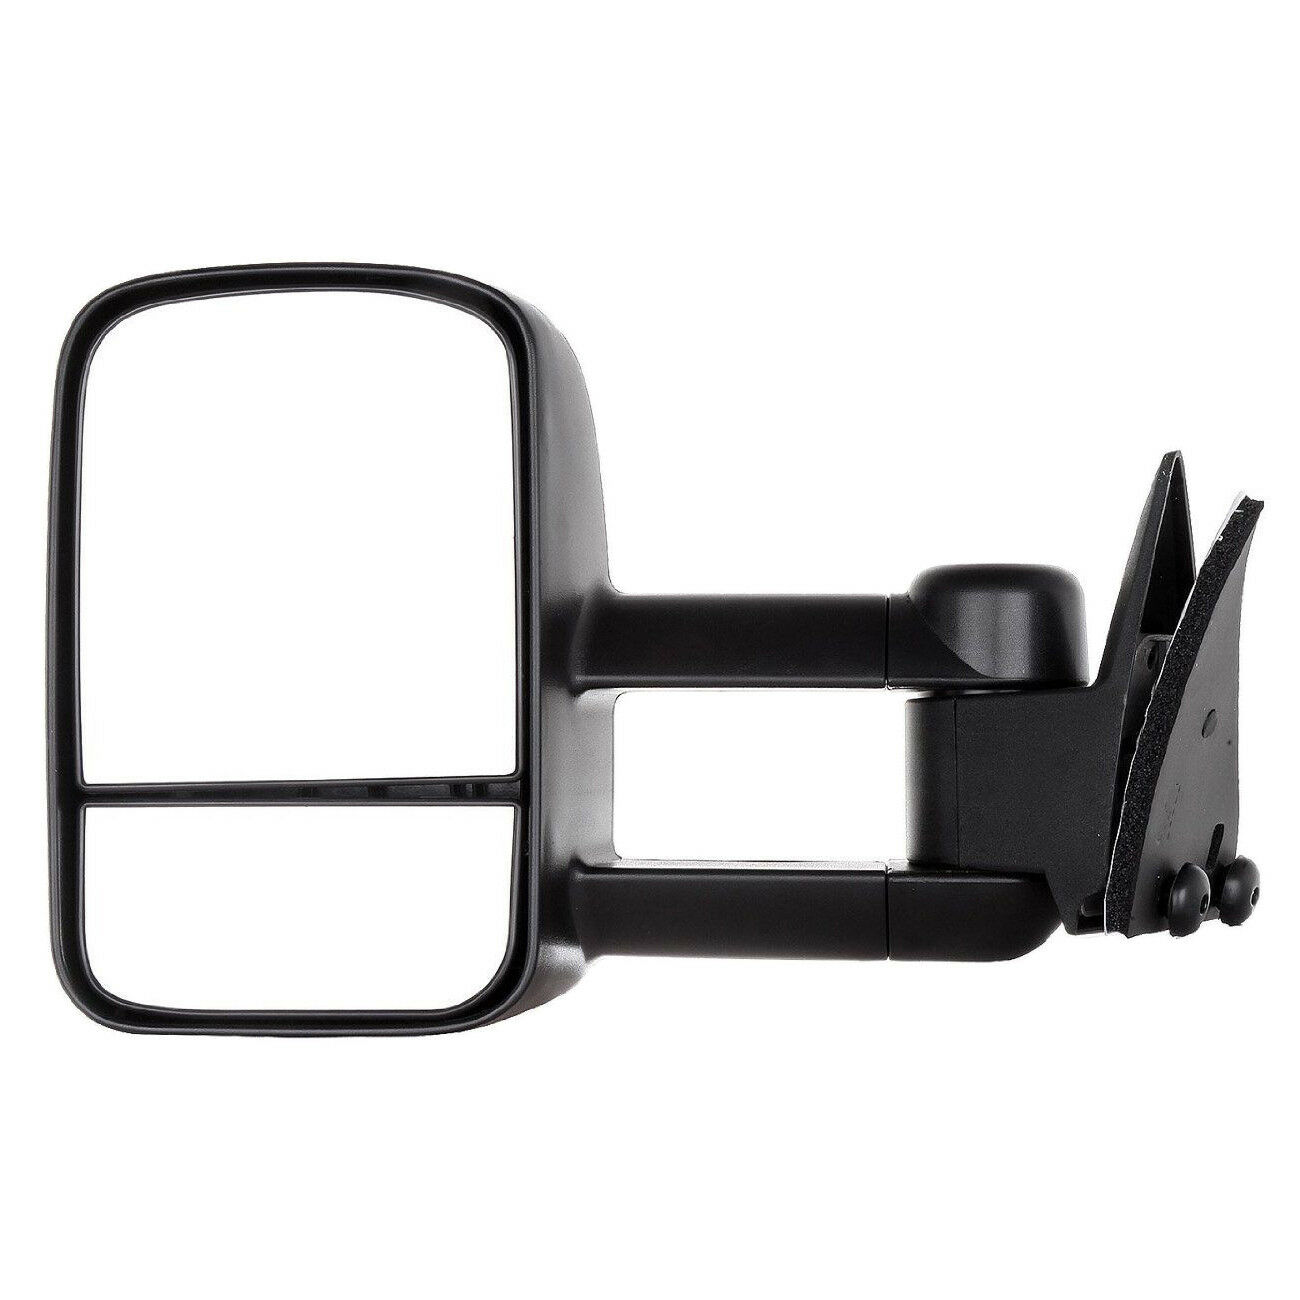 New Driver//Left Side Manual Towing Mirror for Chevy GMC Suburban 1500 2500 92-99